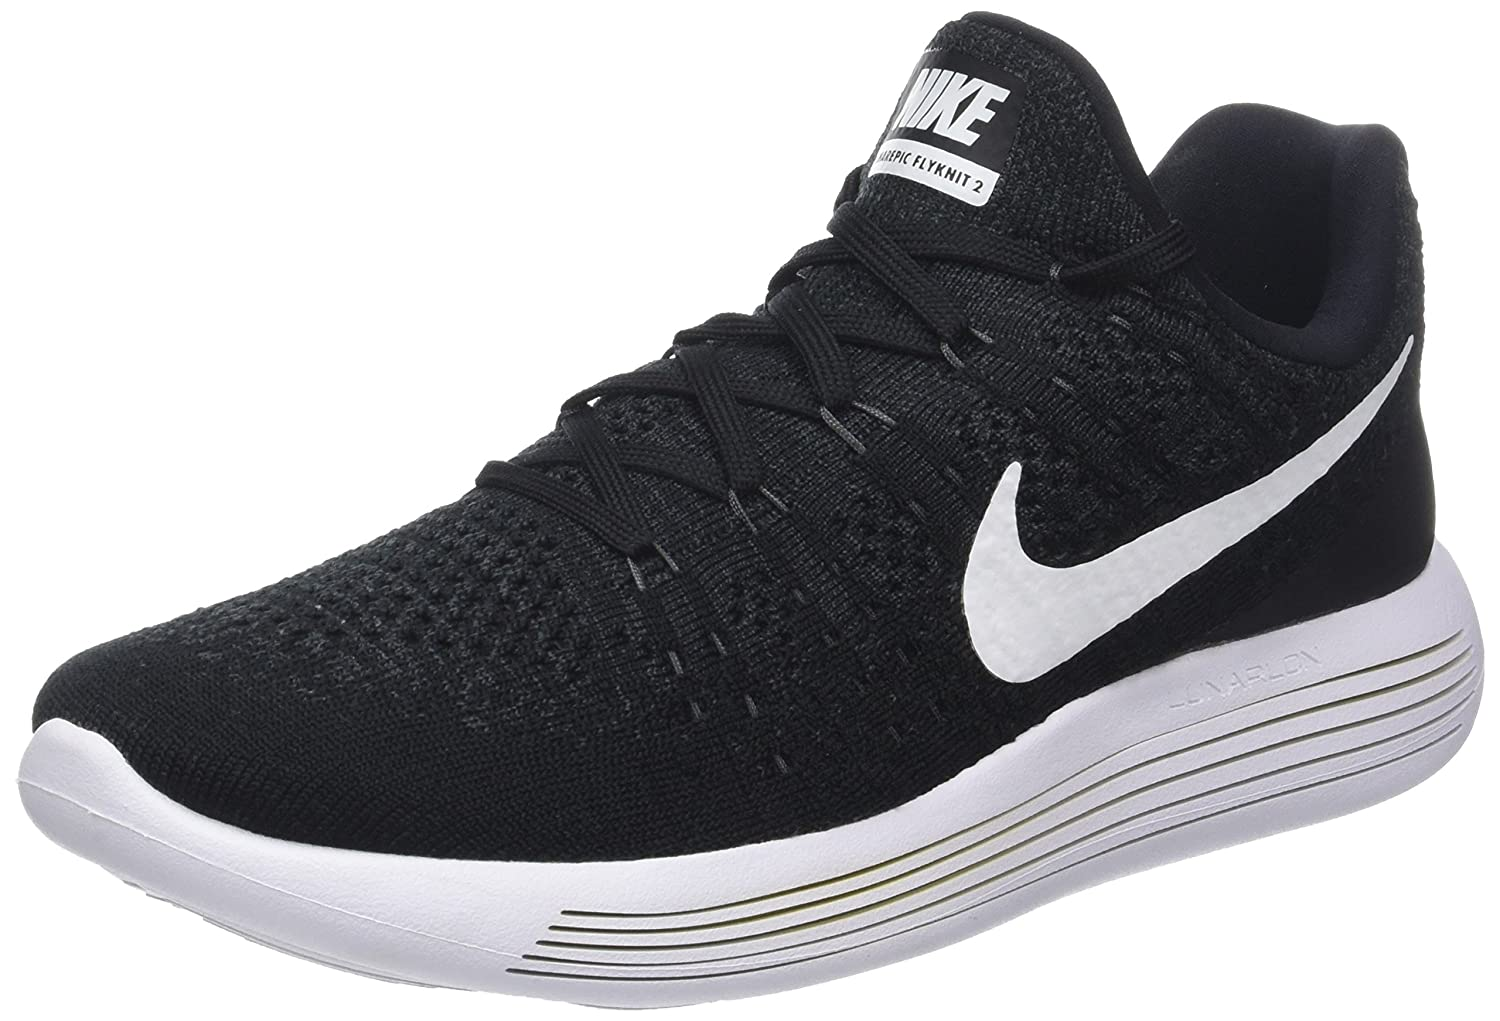 low priced 39a58 2bb60 Nike Men Lunarepic Low Flyknit 2 Running (Black/White-Anthracite) Size 9.0  US